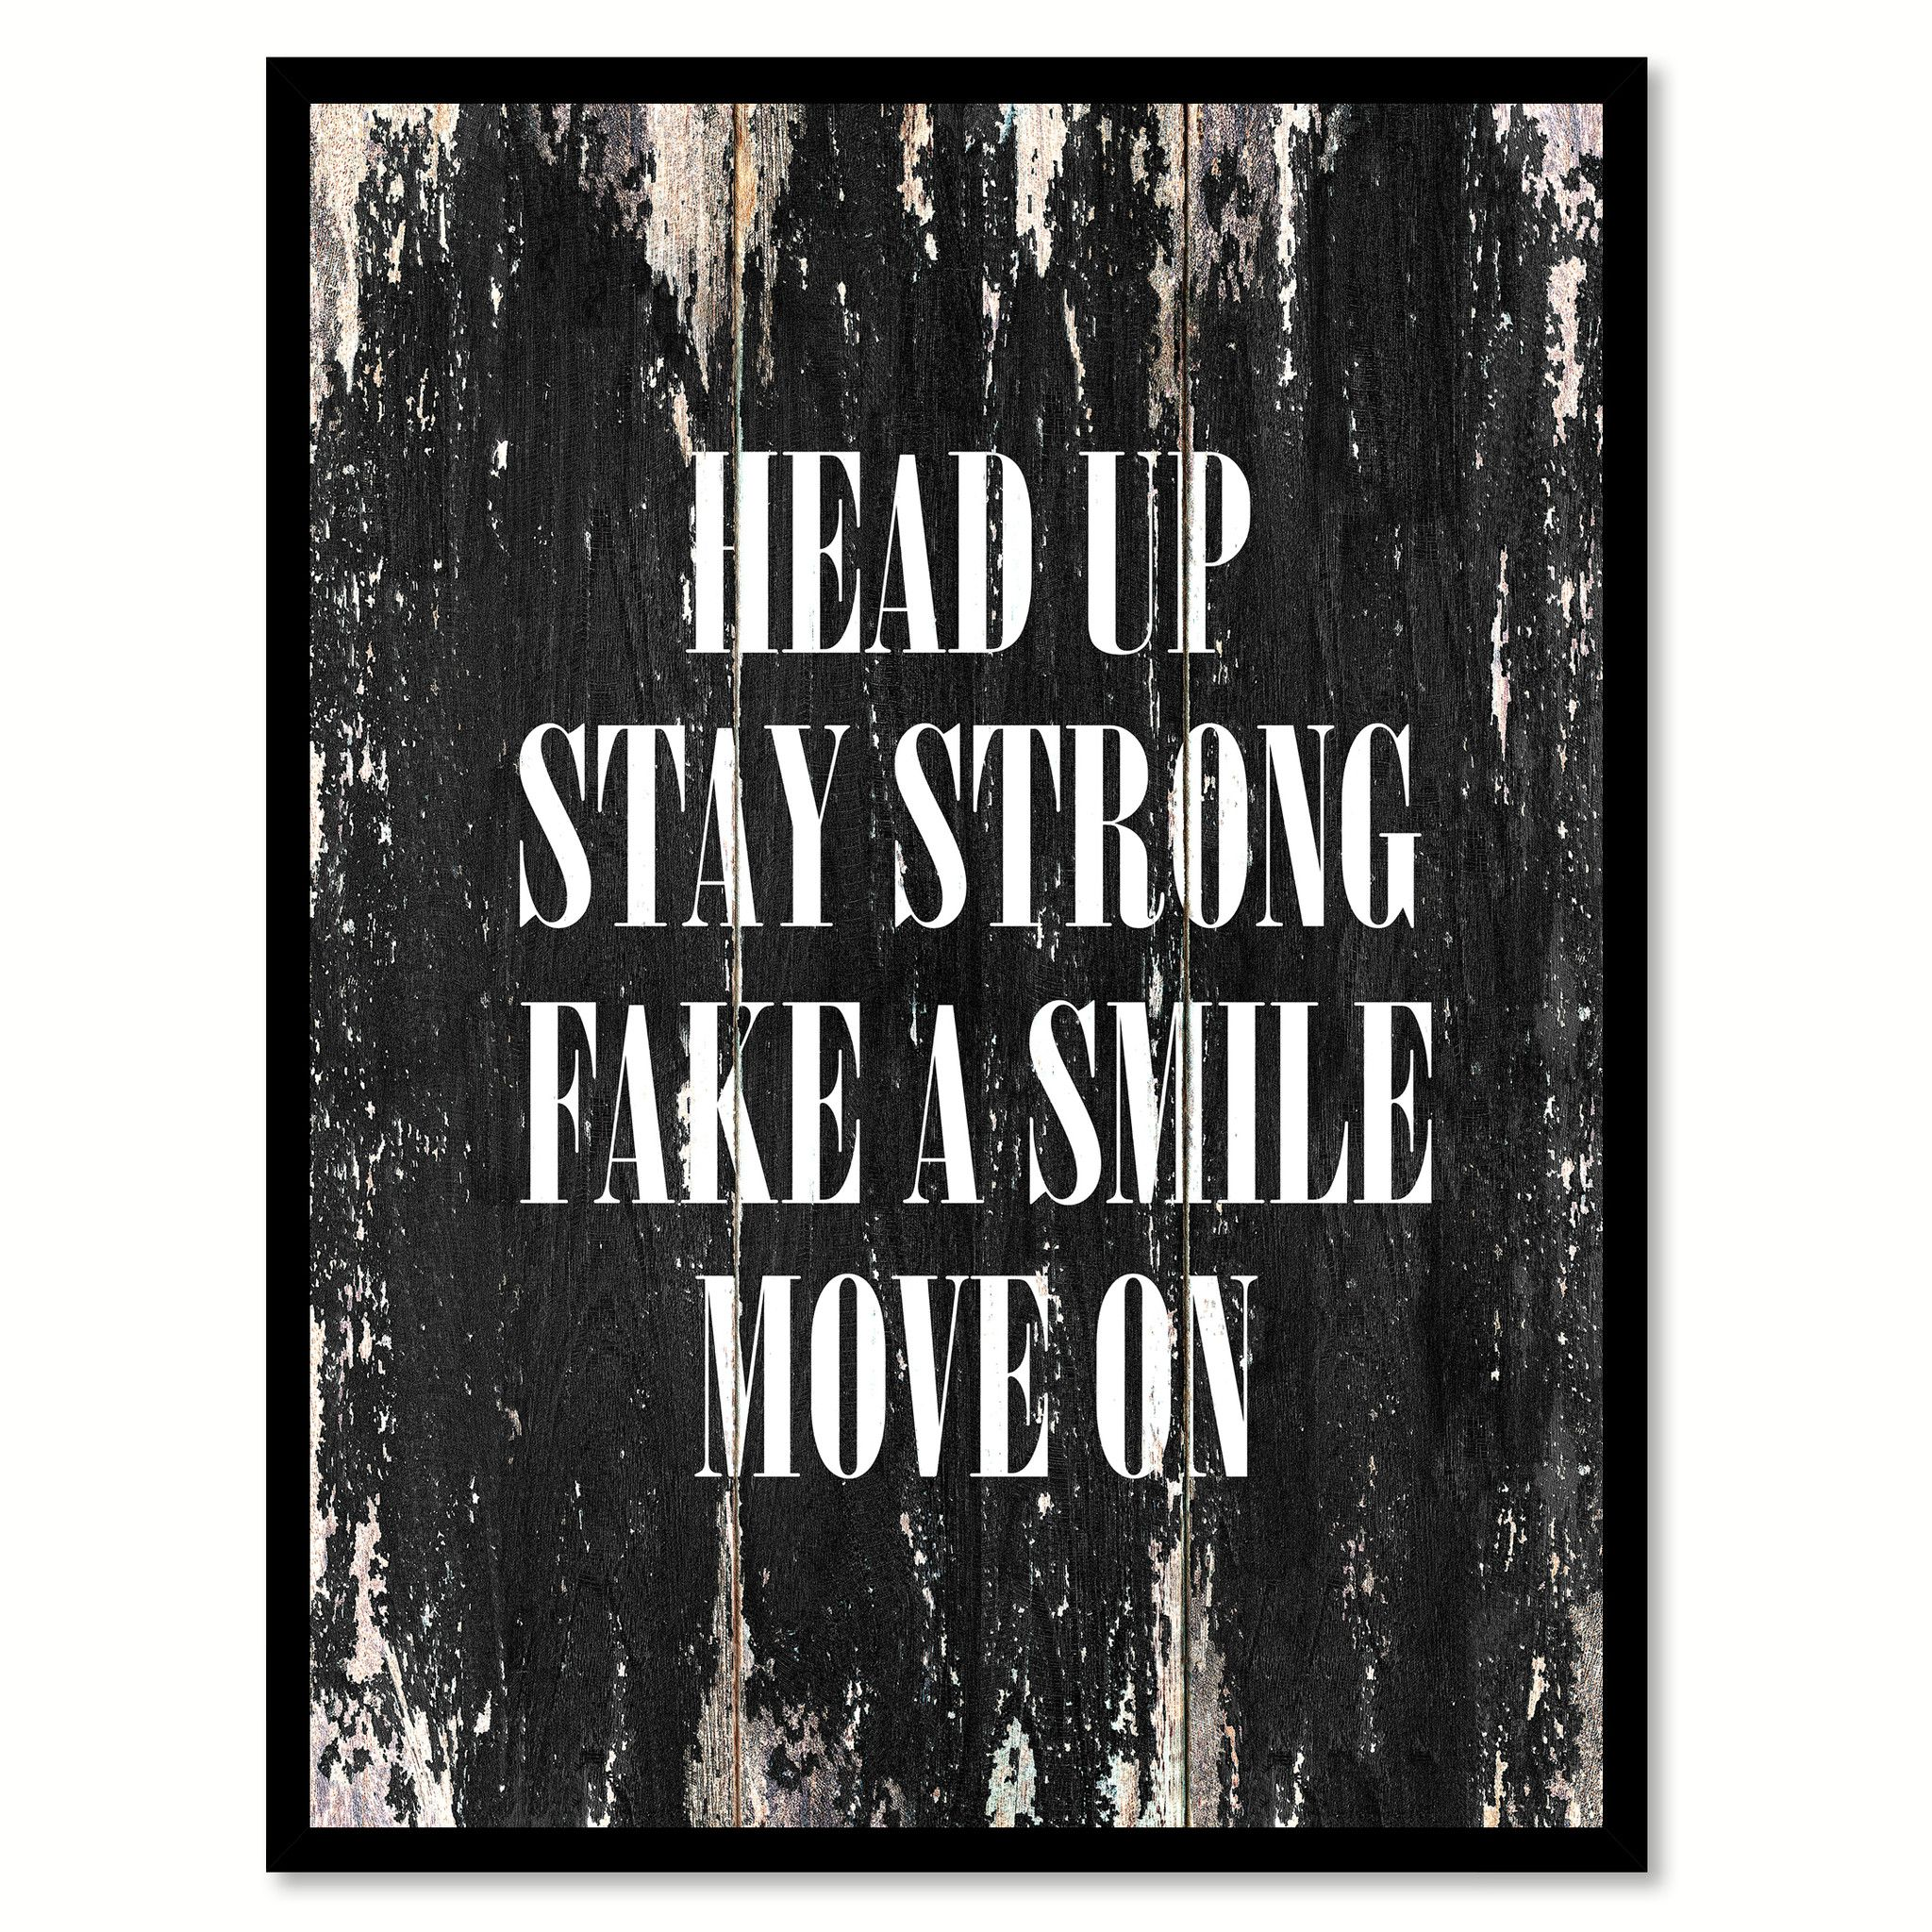 Head Up Stay Strong Fake A Smile Move On Motivational Quote Saying